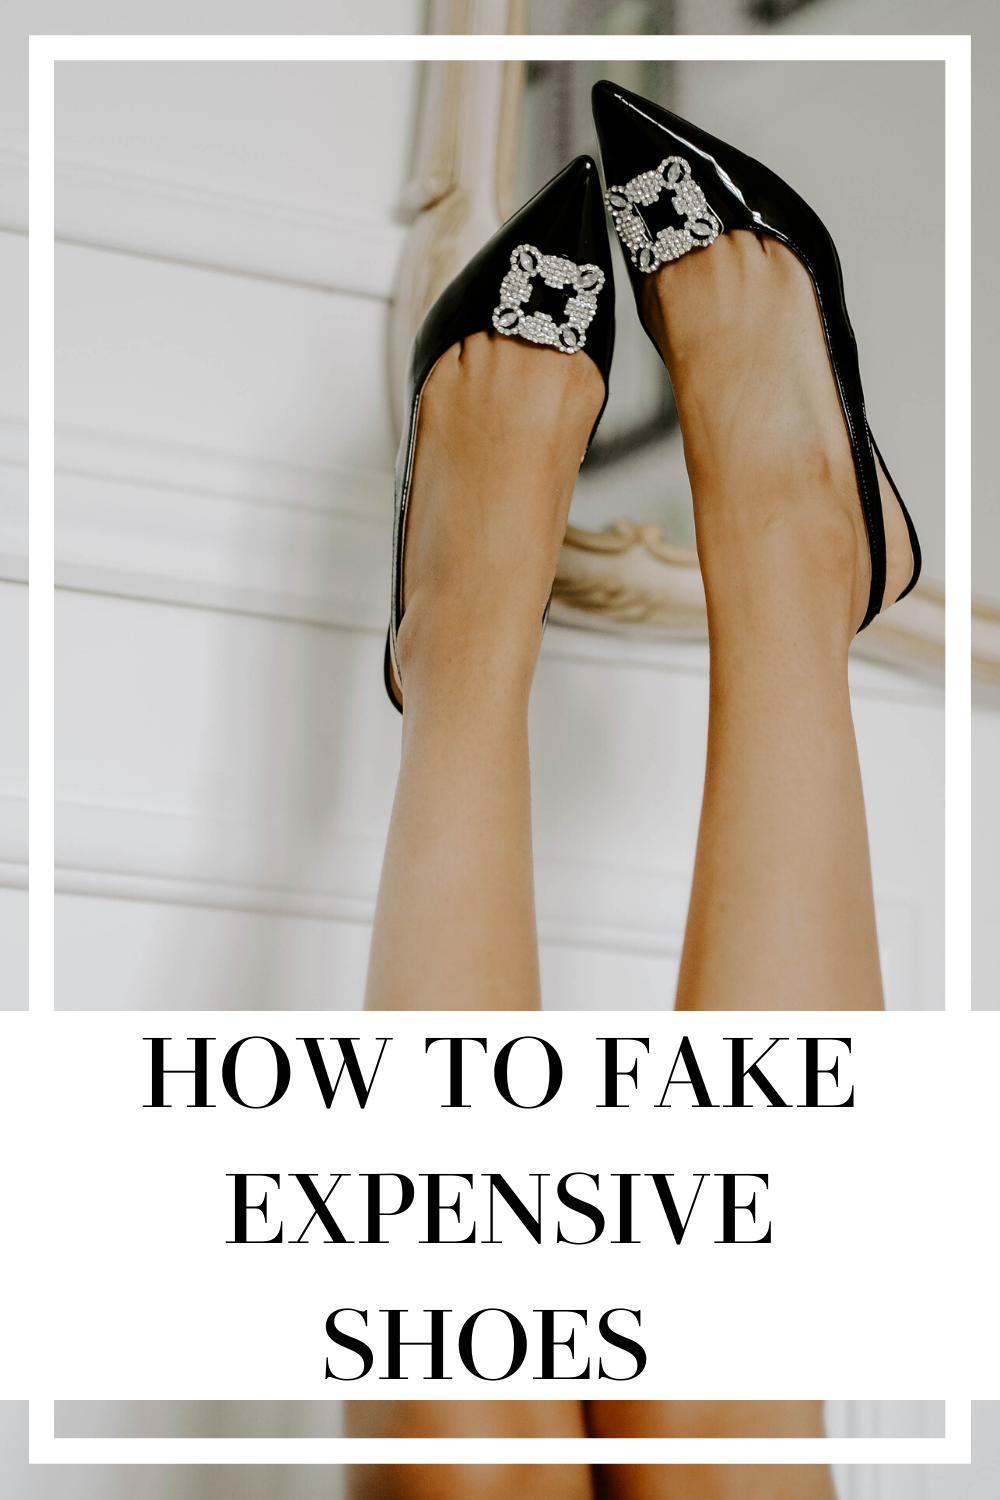 how to fake expensive shoes